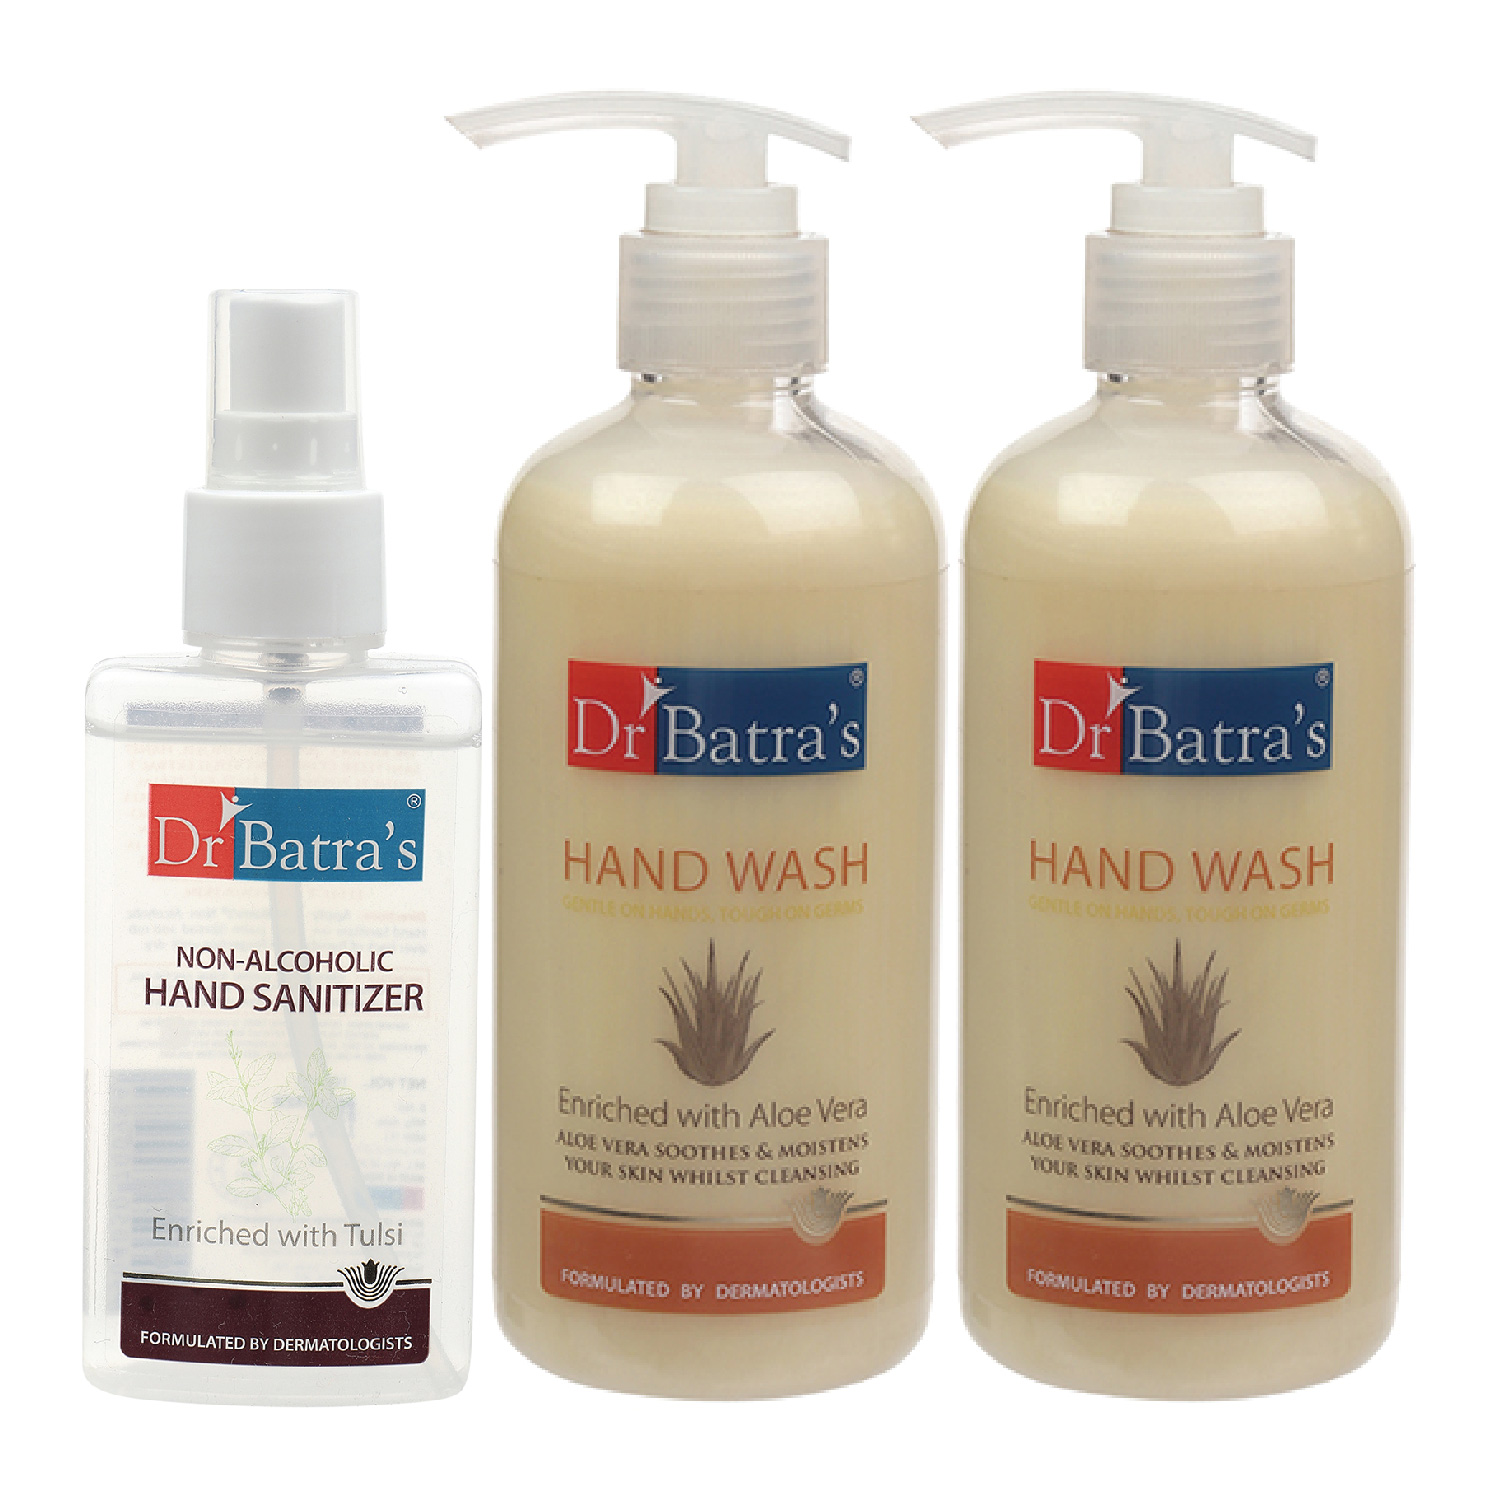 Dr Batra's   Dr Batra's Hand Wash Aloe Vera 10x Better Protection Against Germs - 300 ml (Pack of 2) and Non Alcoholic Hand Sanitizer - 100 ml